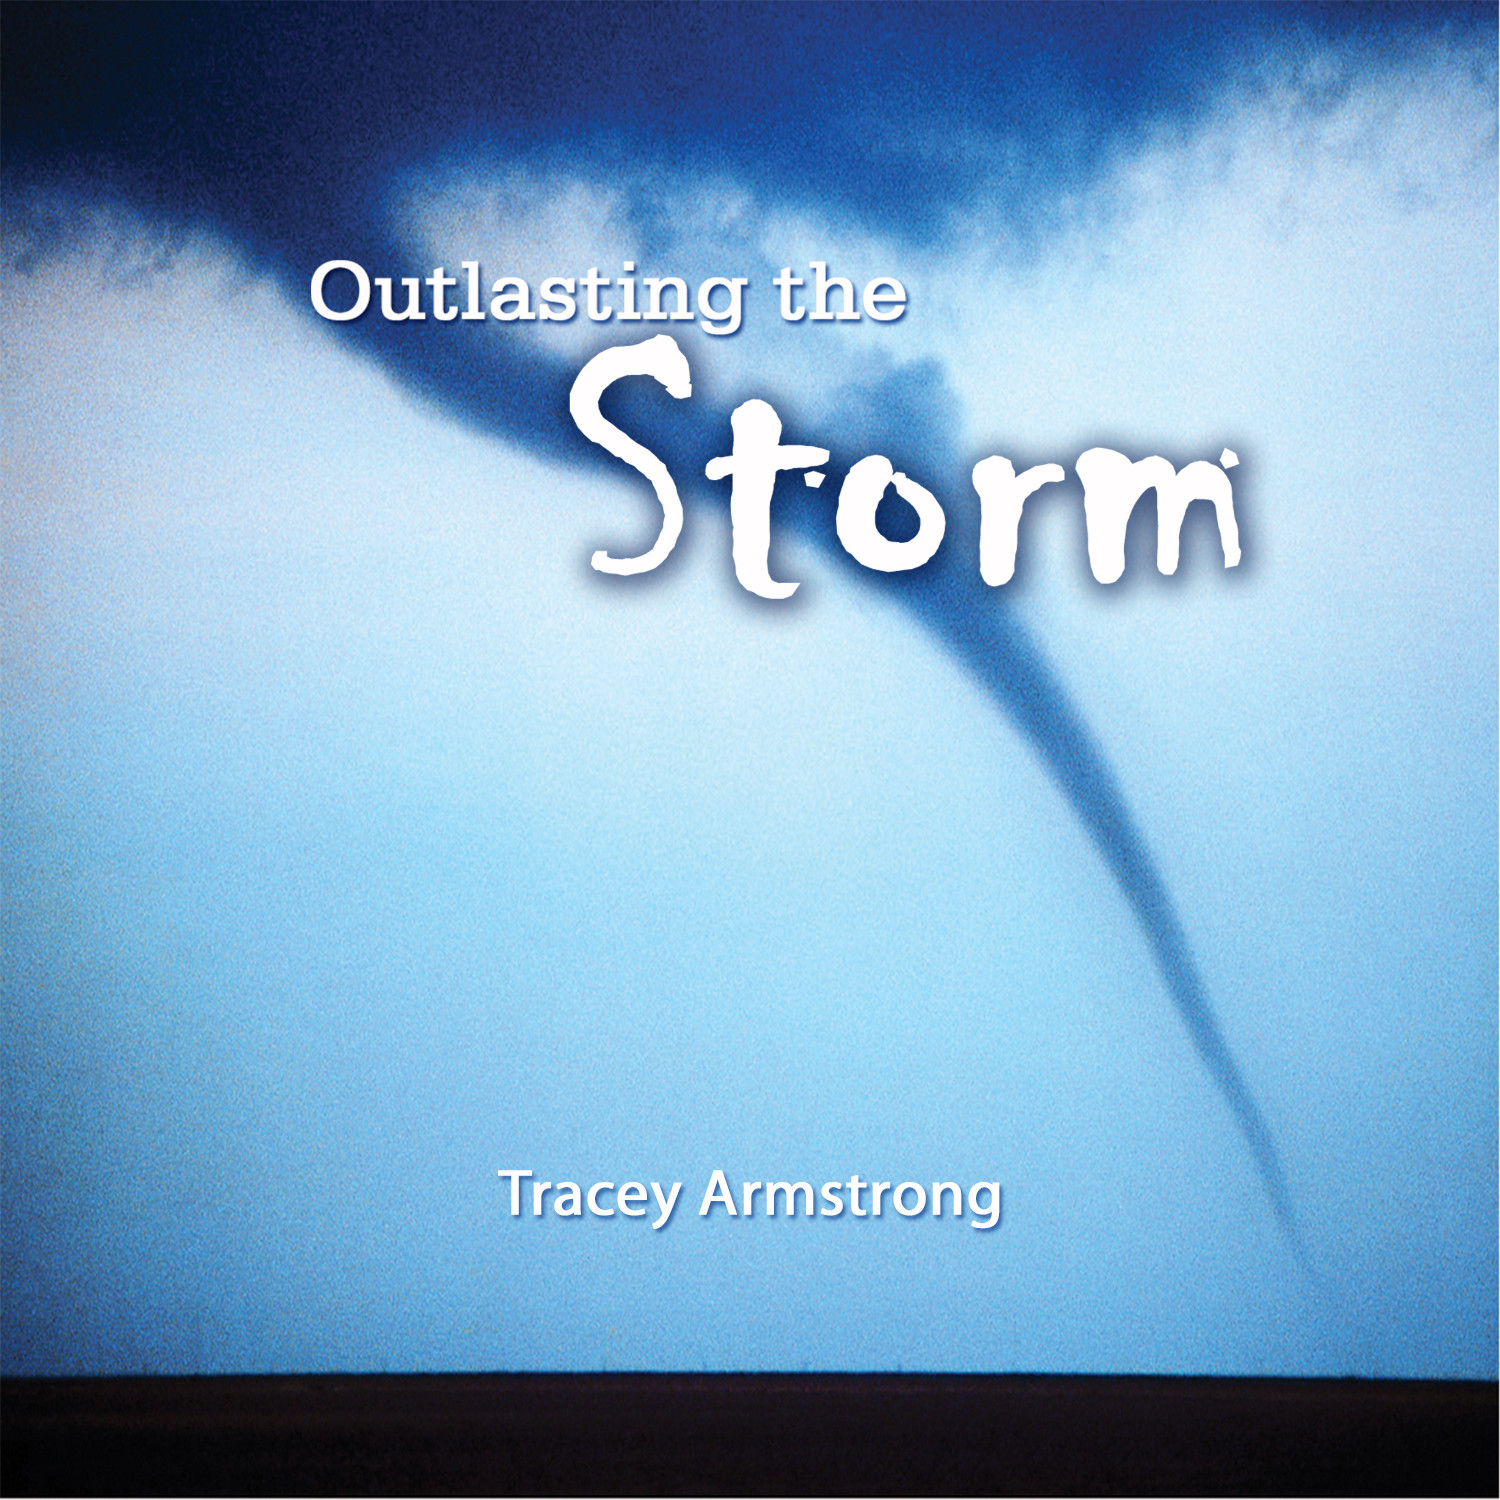 Outlasting the Storm